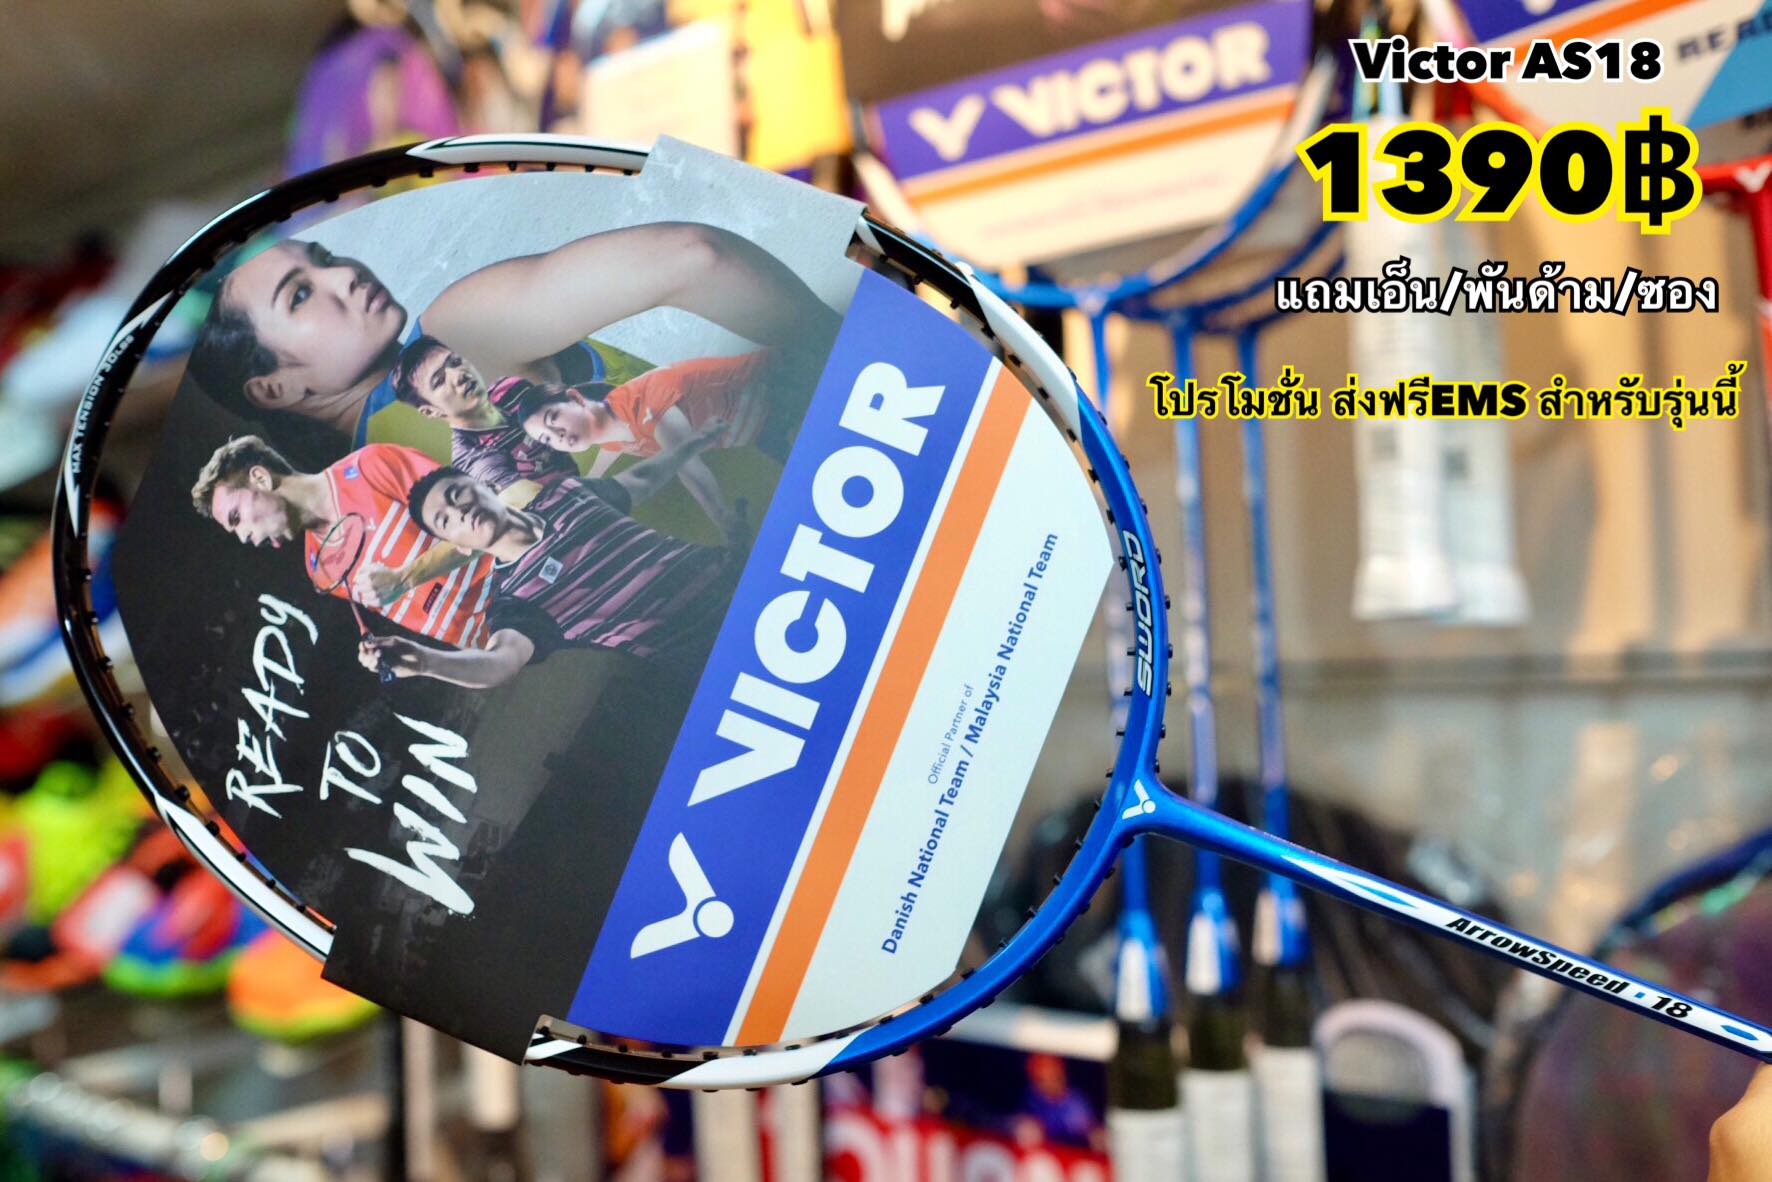 Victor AS18